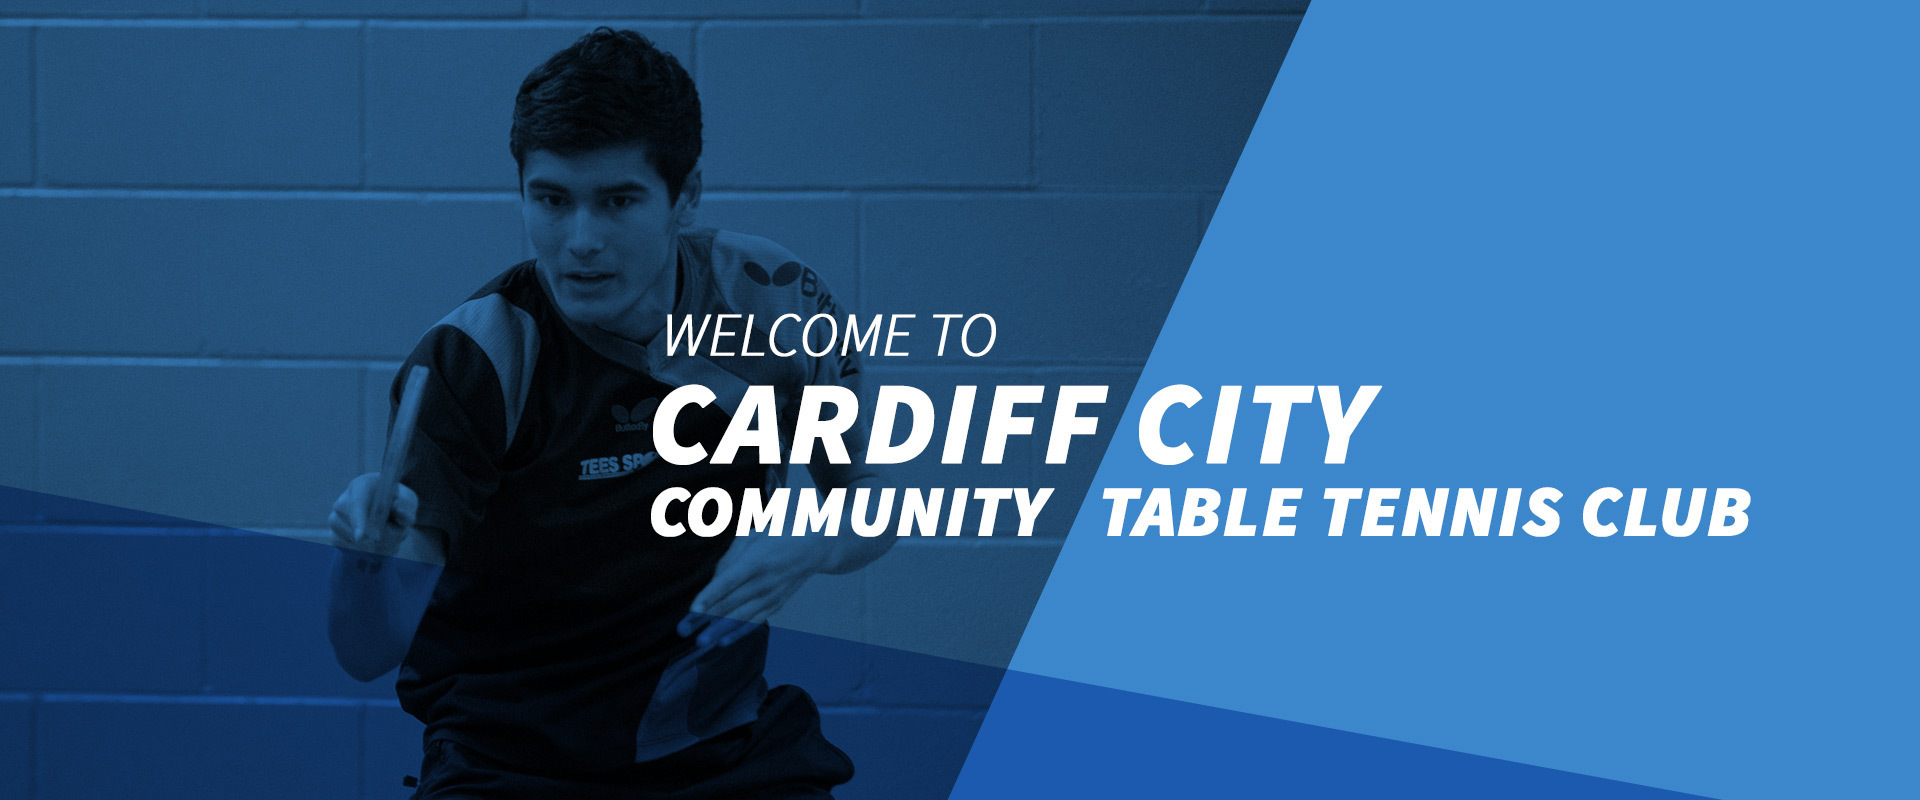 7b7c6d6c644b3 Cardiff City Community Table Tennis Club